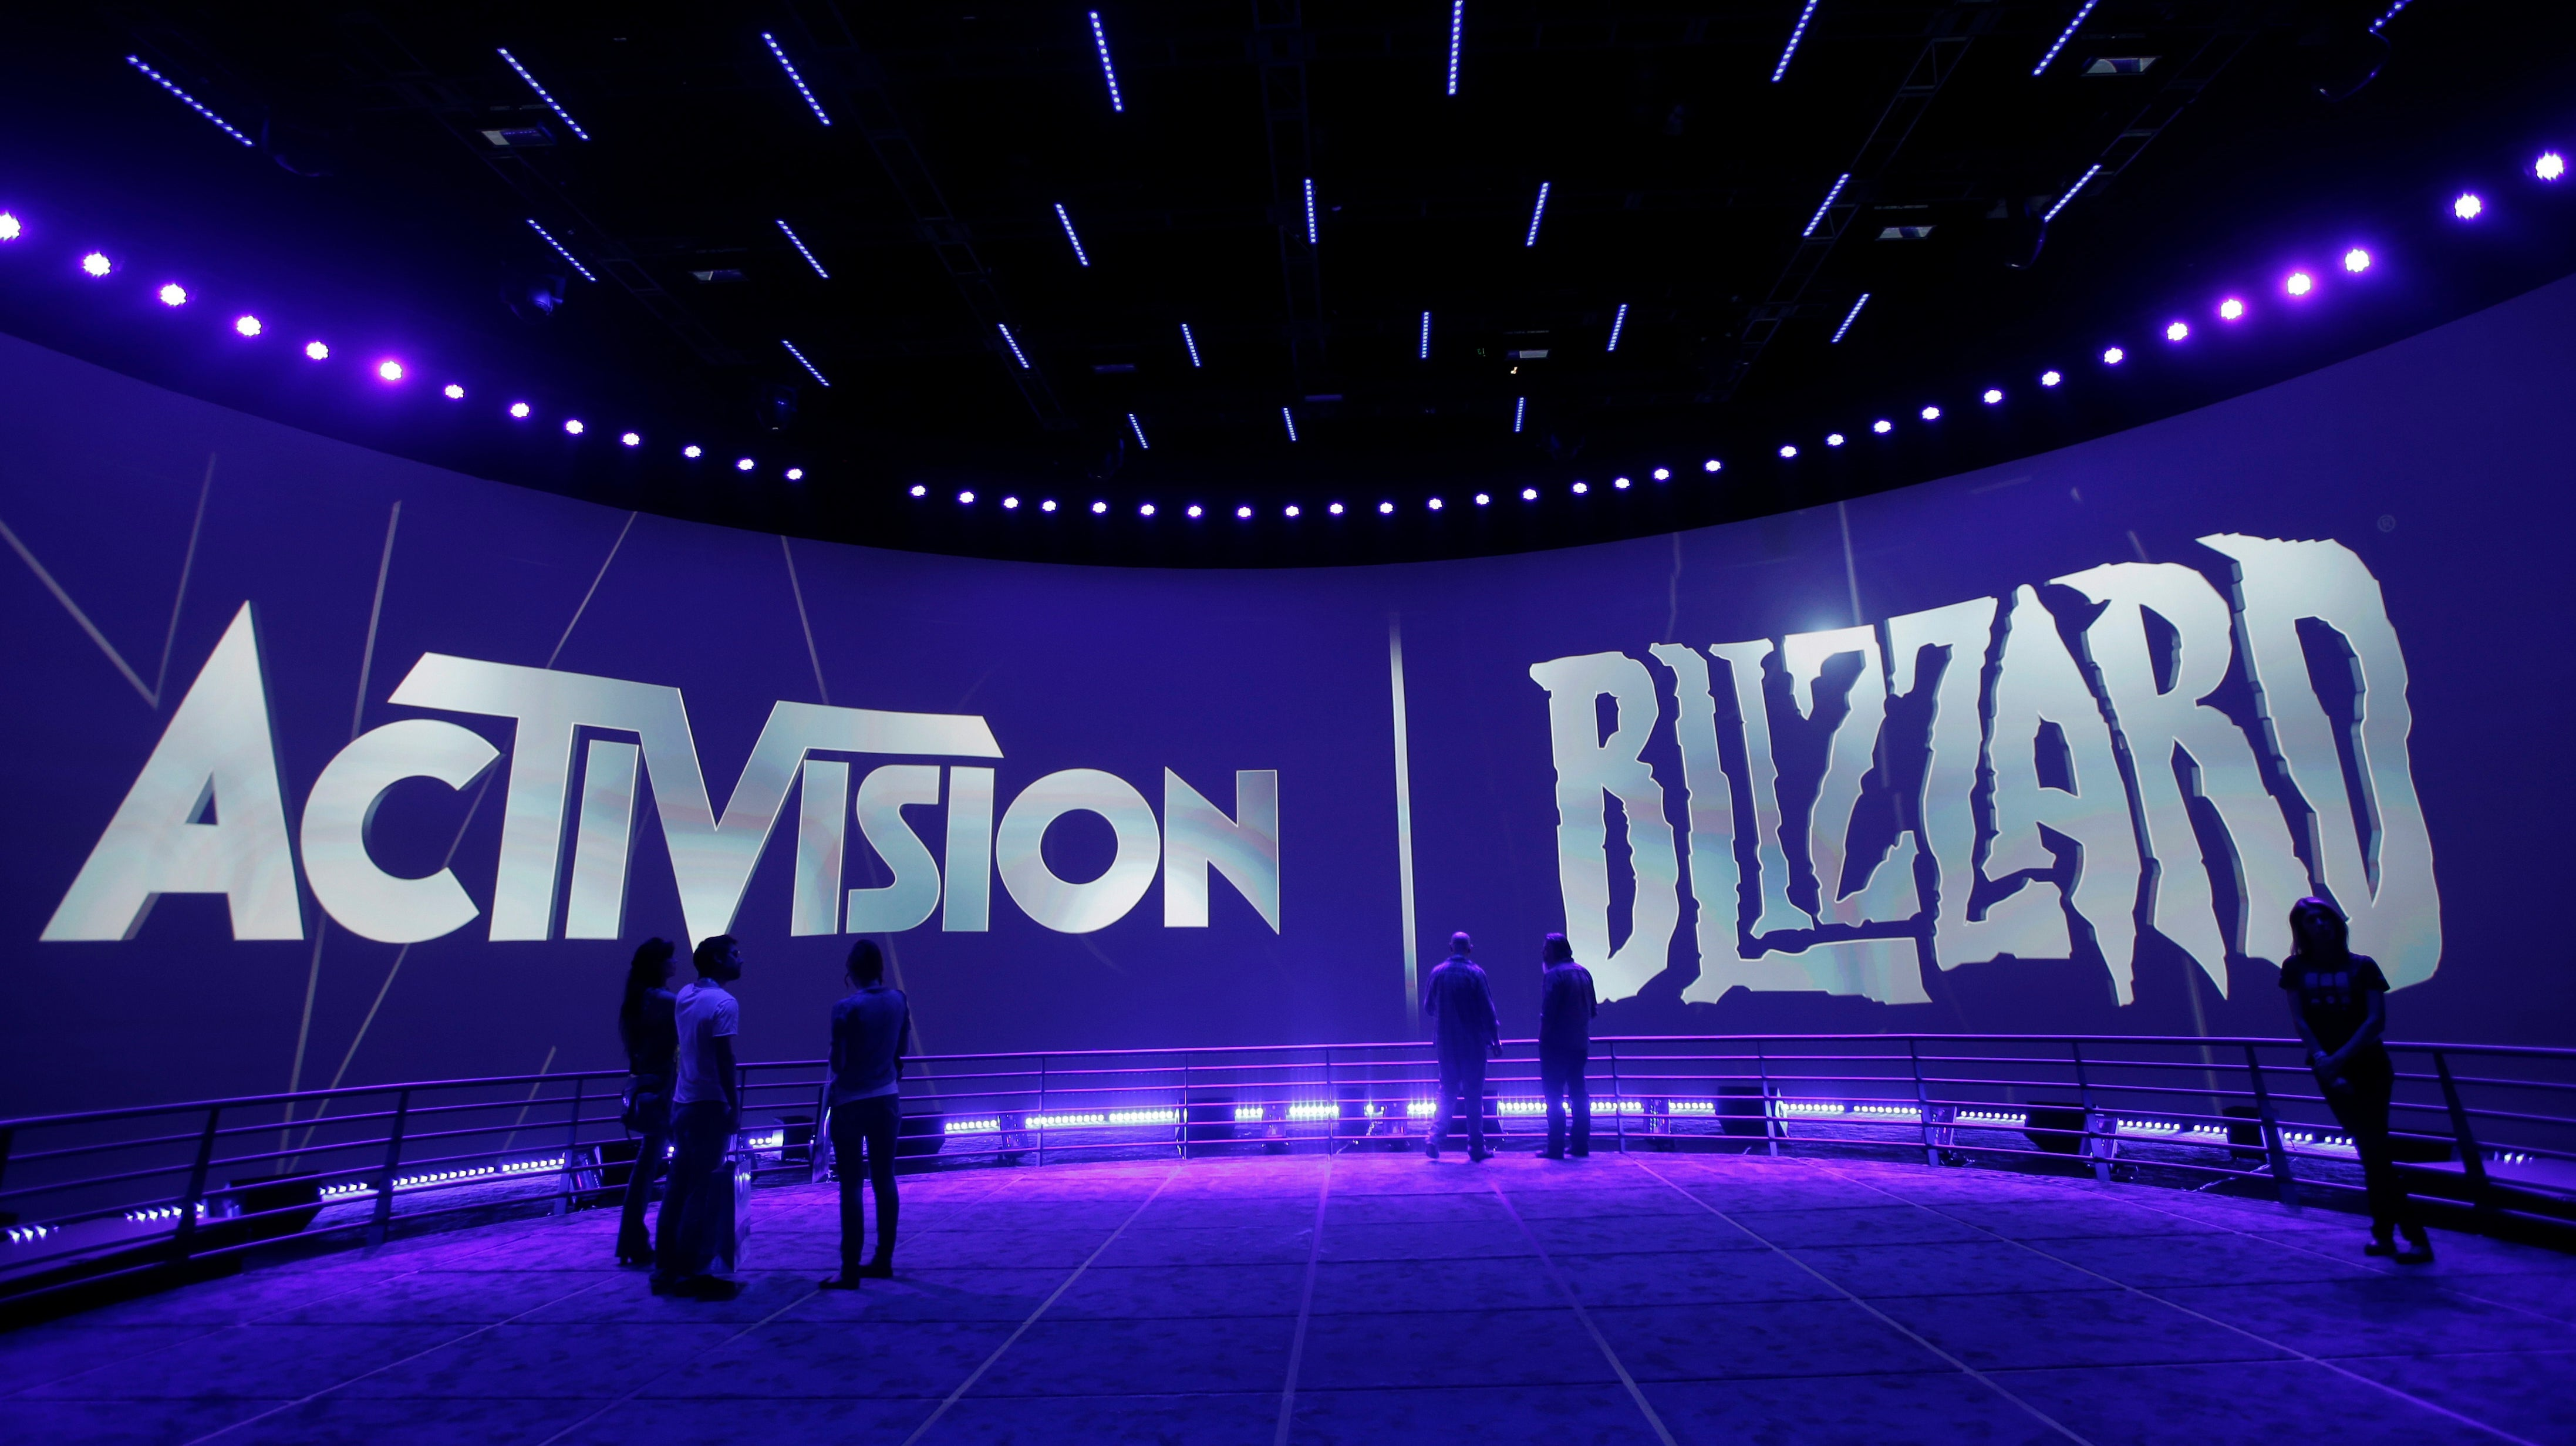 Report: Activision Blizzard Wants To Know How Its Employees' Pregnancies Are Going